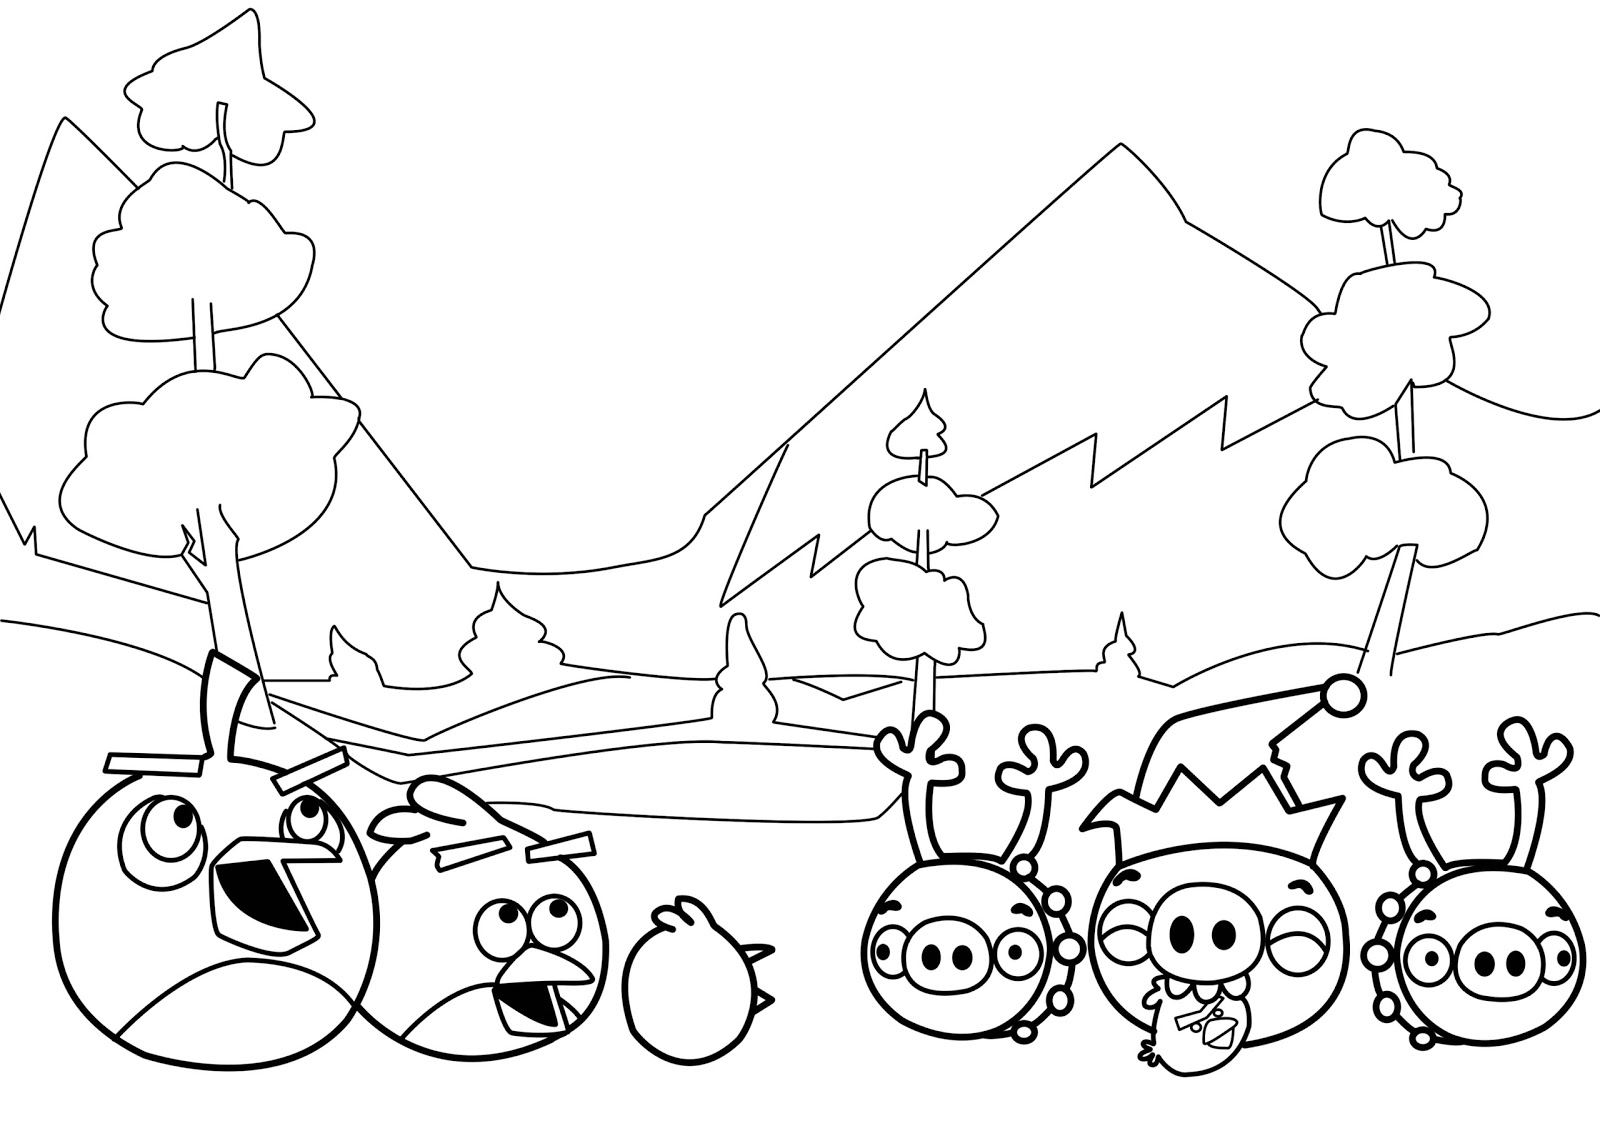 Coloring Pages Images : New angry birds coloring pages learn to